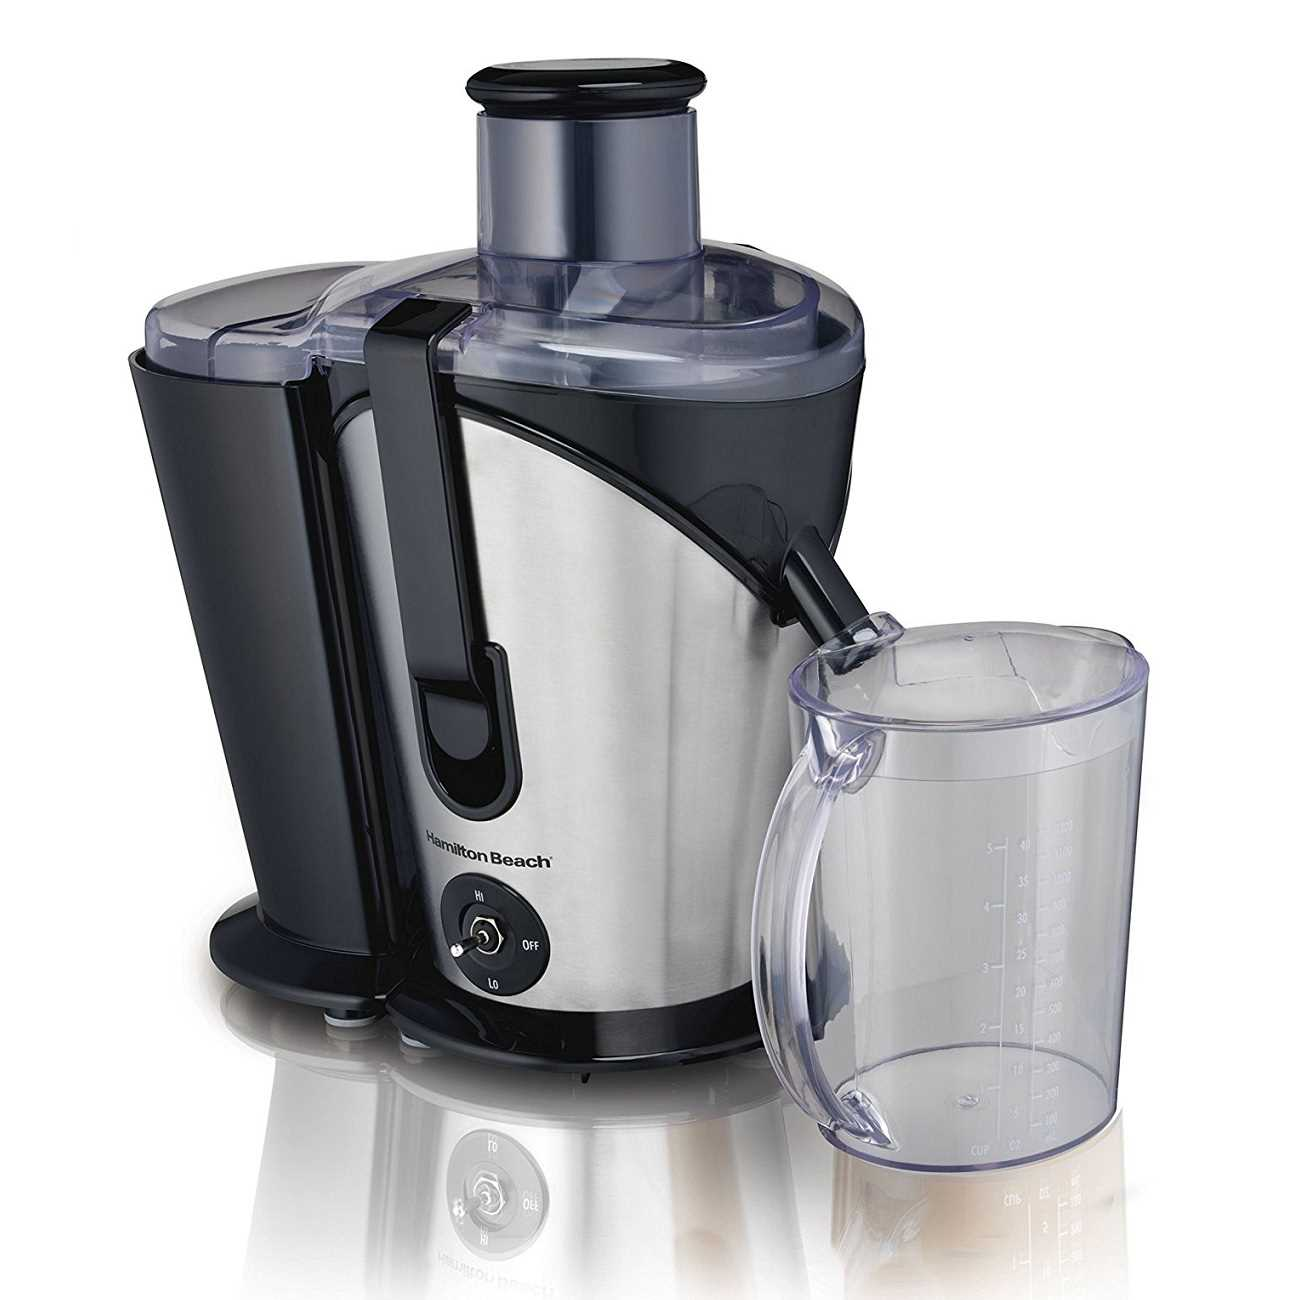 Hamilton Beach 67750-IN 850 W Juice Extractor